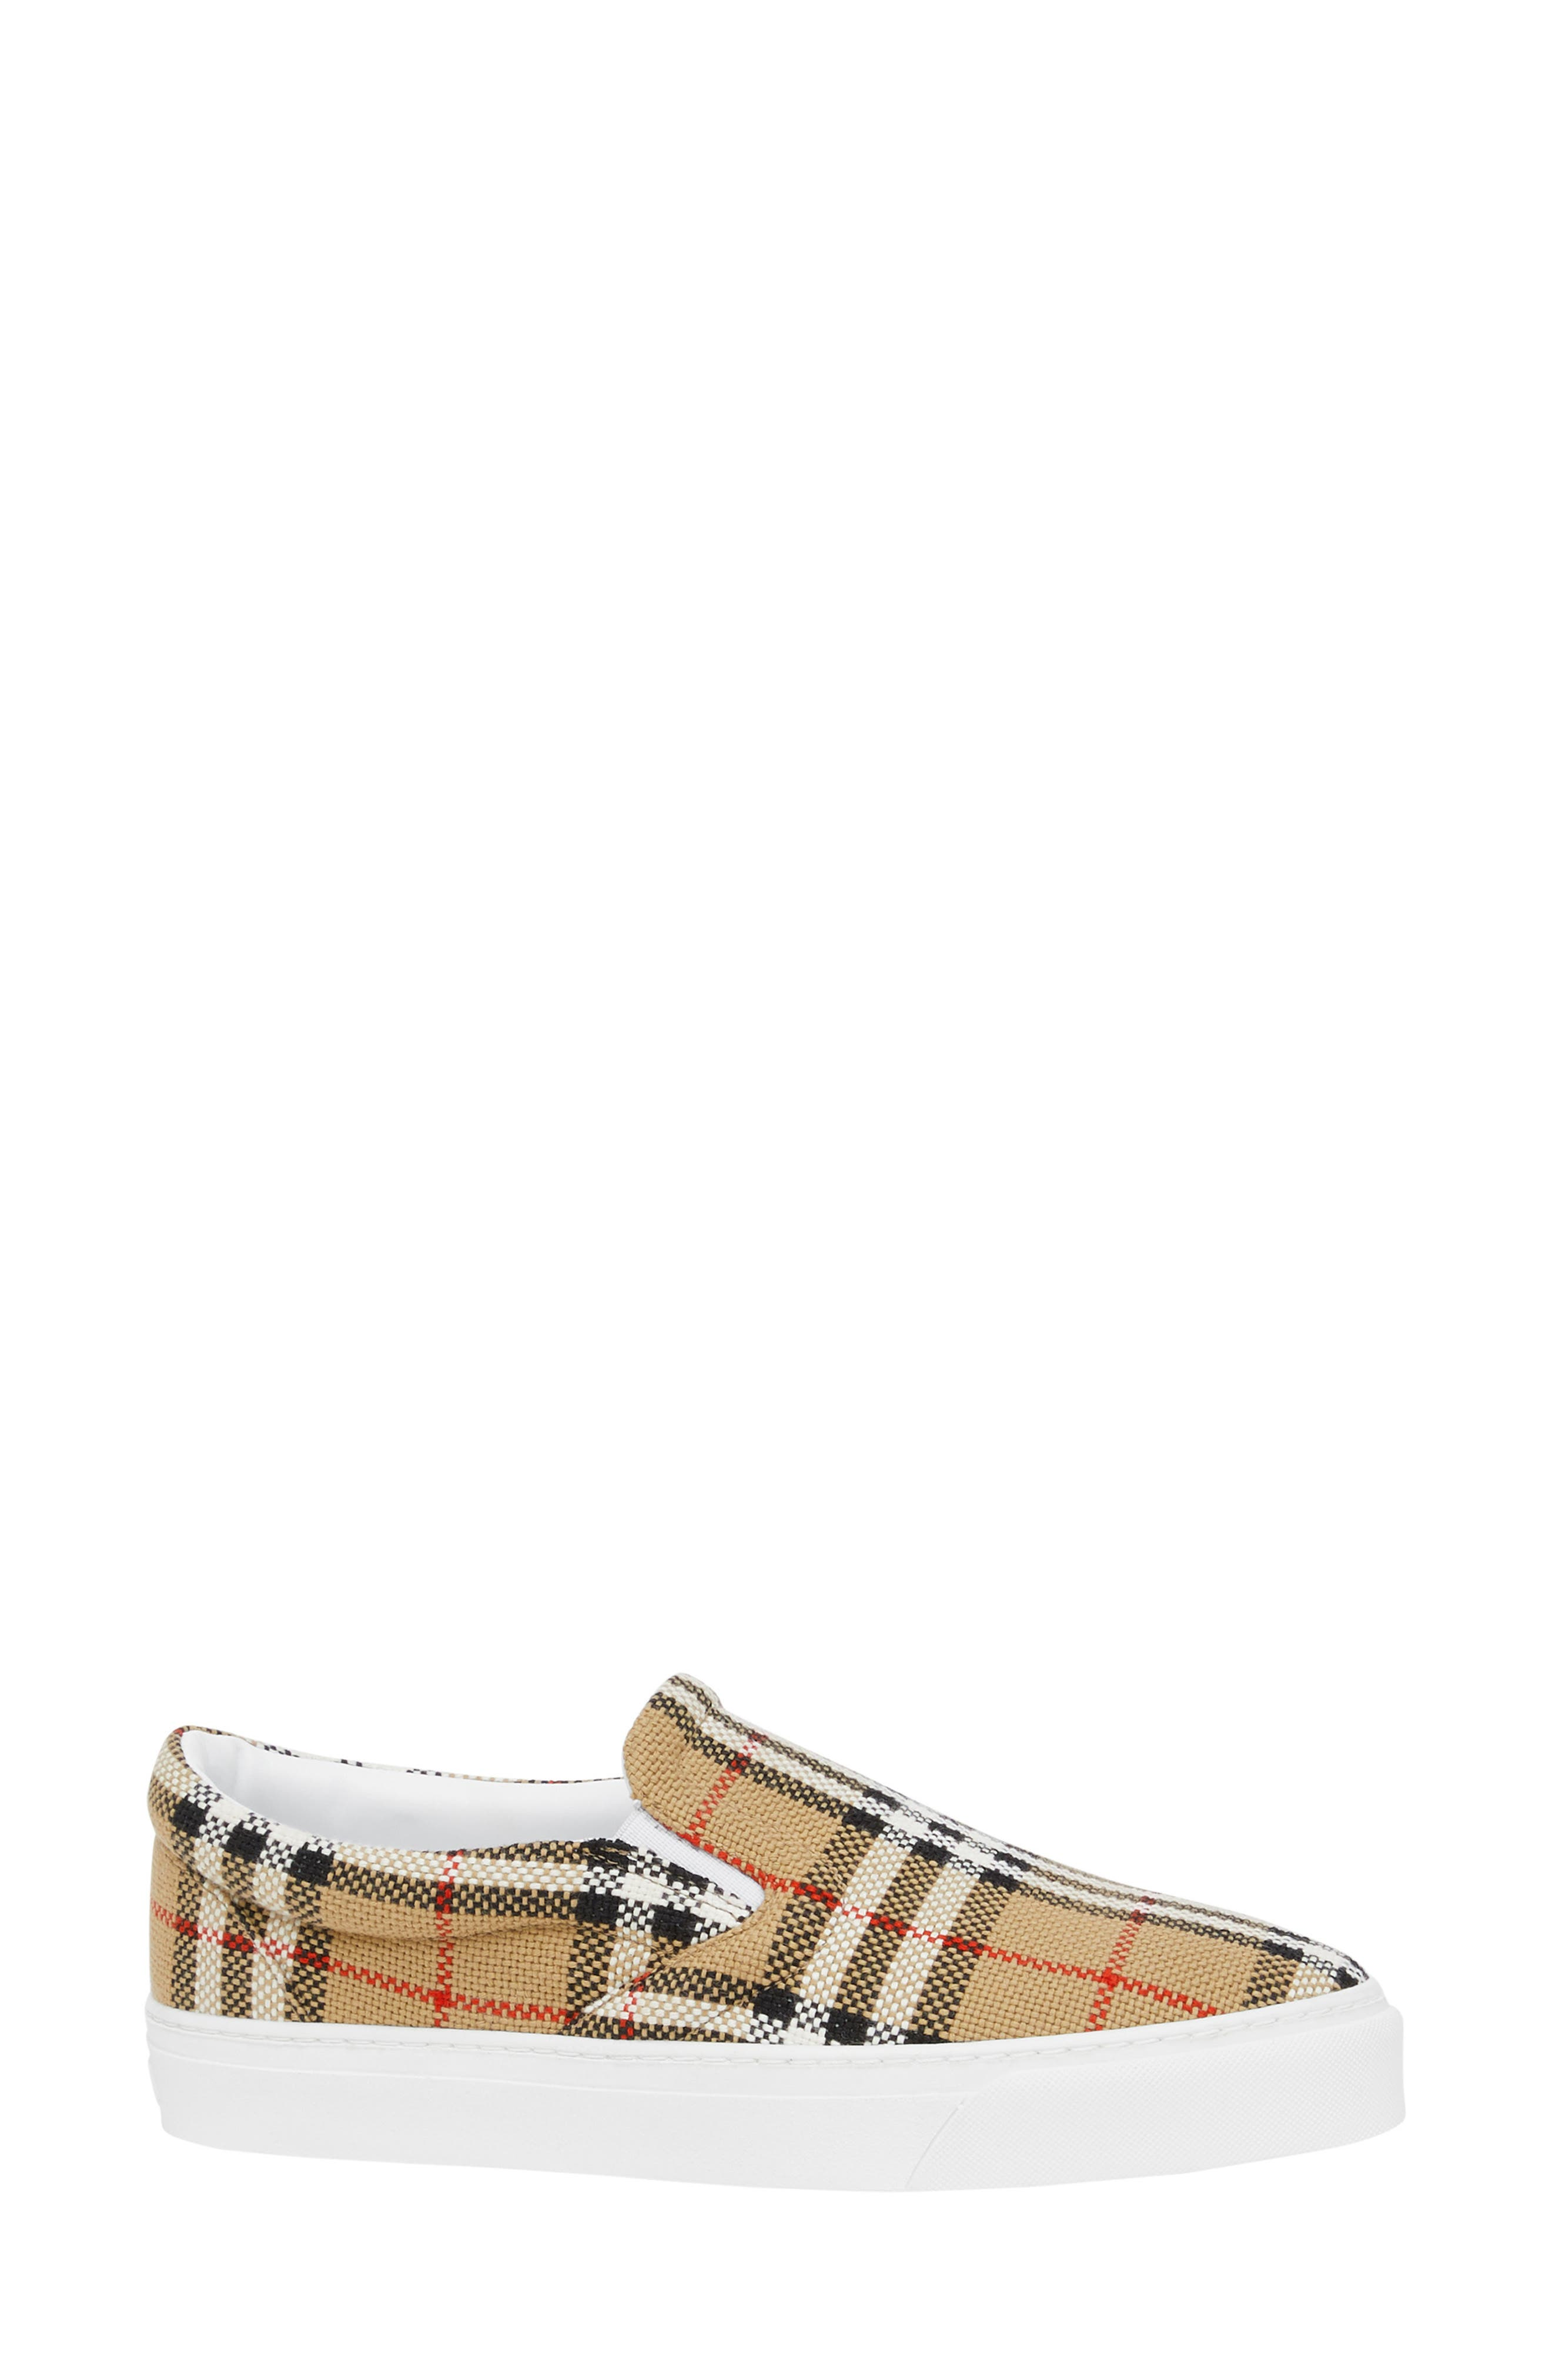 Women's Burberry Shoes | Nordstrom